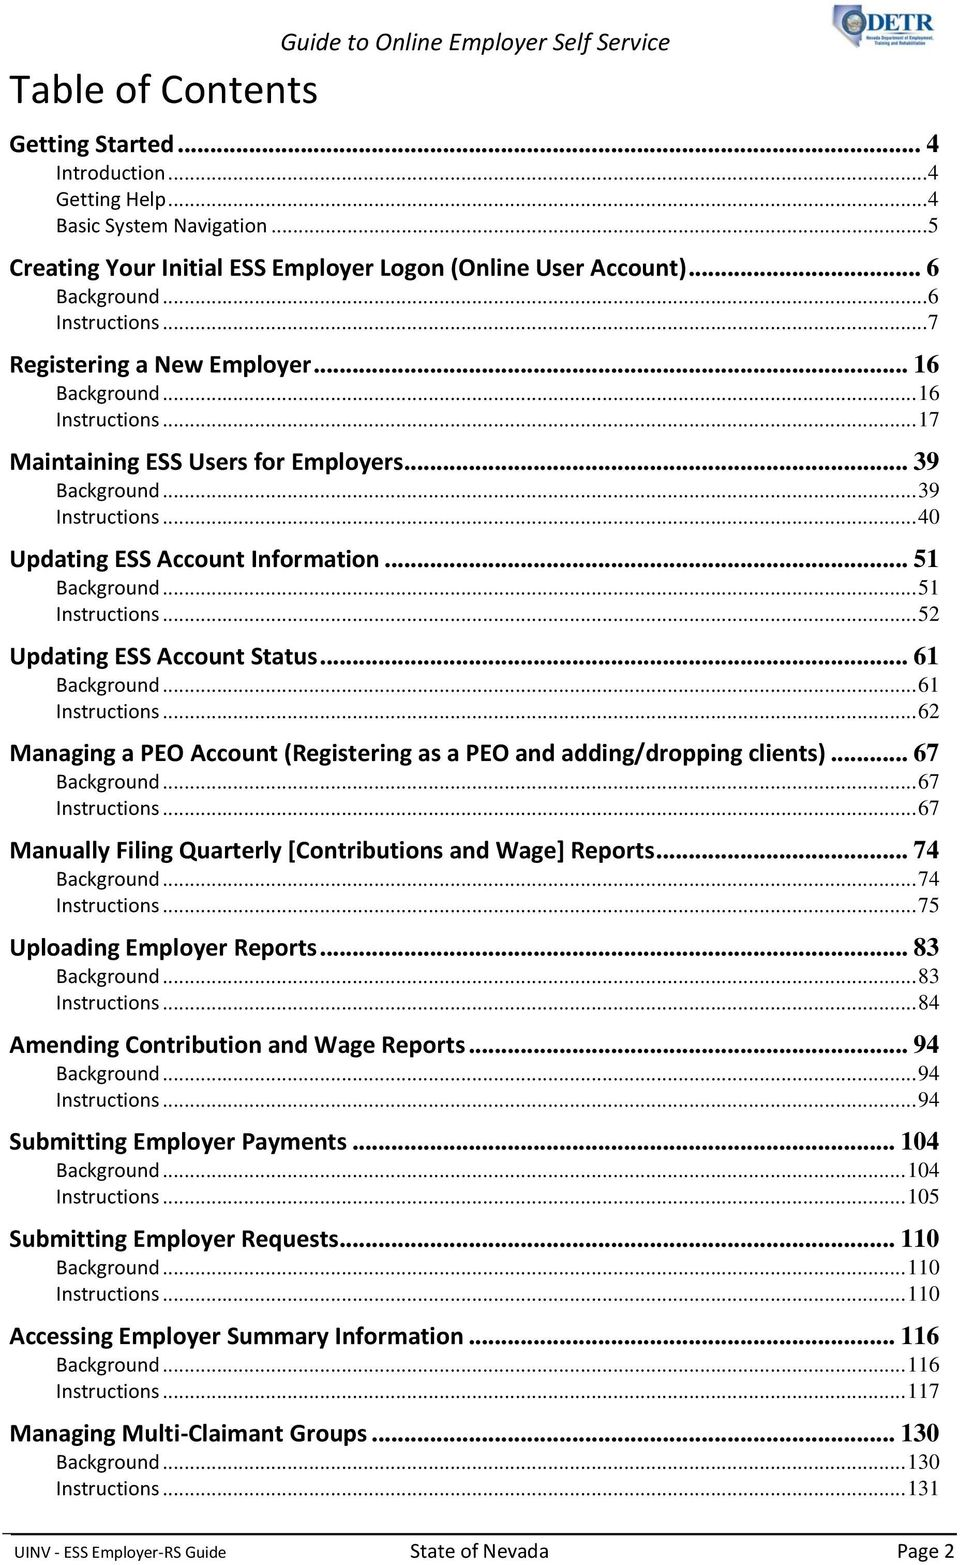 .. 17 Maintaining ESS Users for Employers... 39 Background... 39 Instructions... 40 Updating ESS Account Information... 51 Background... 51 Instructions... 52 Updating ESS Account Status.